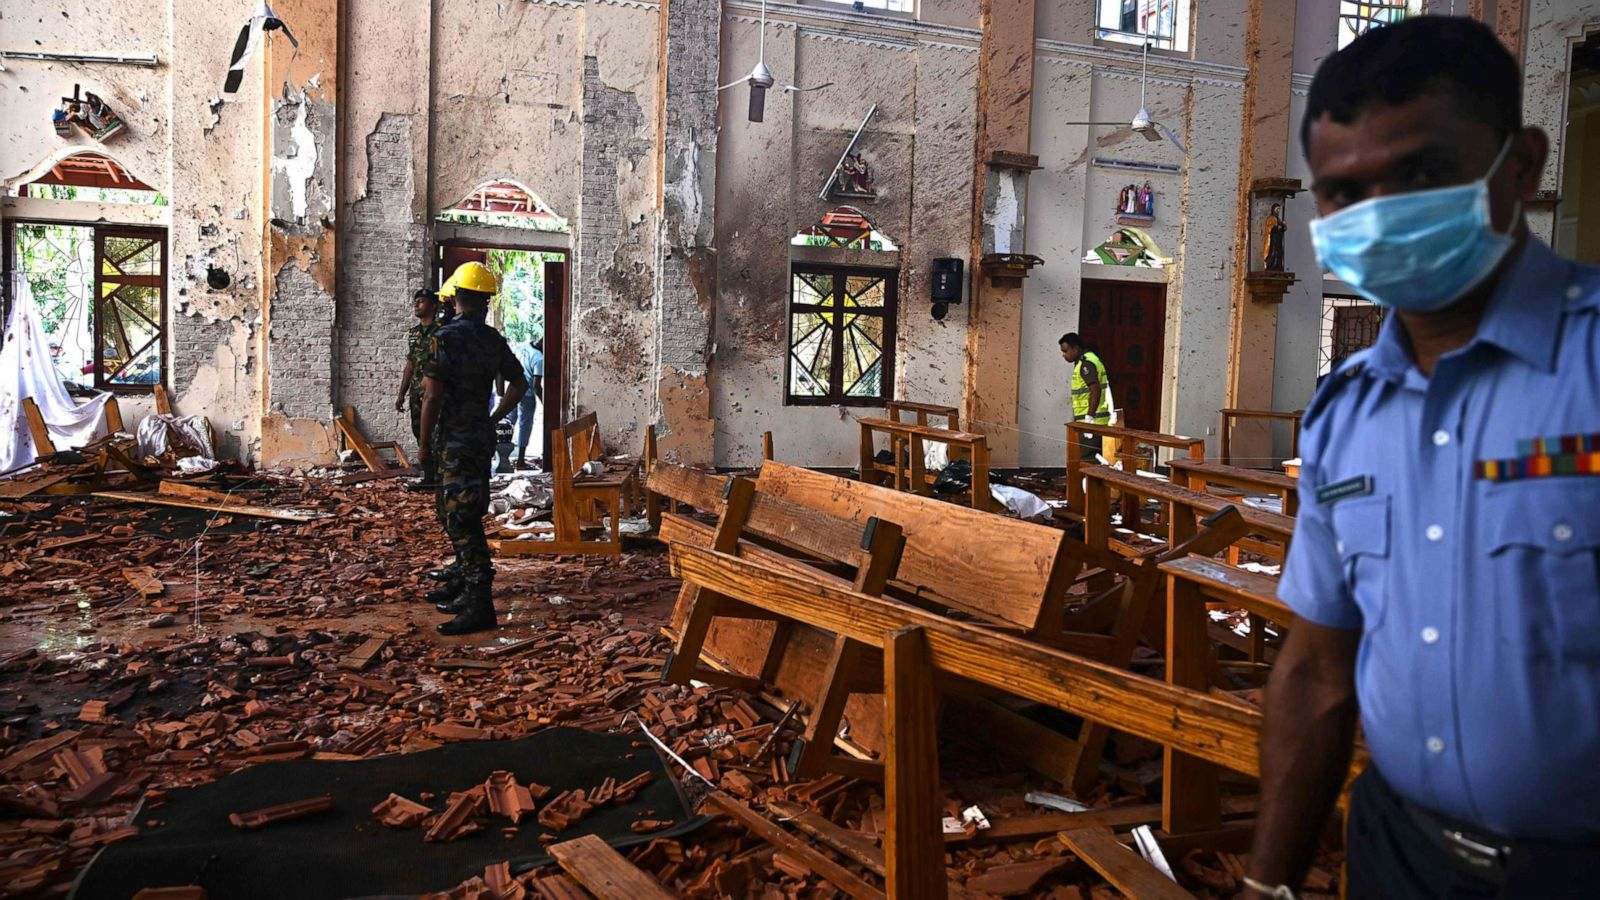 New details emerge about the suicide bombers behind the Sri Lanka